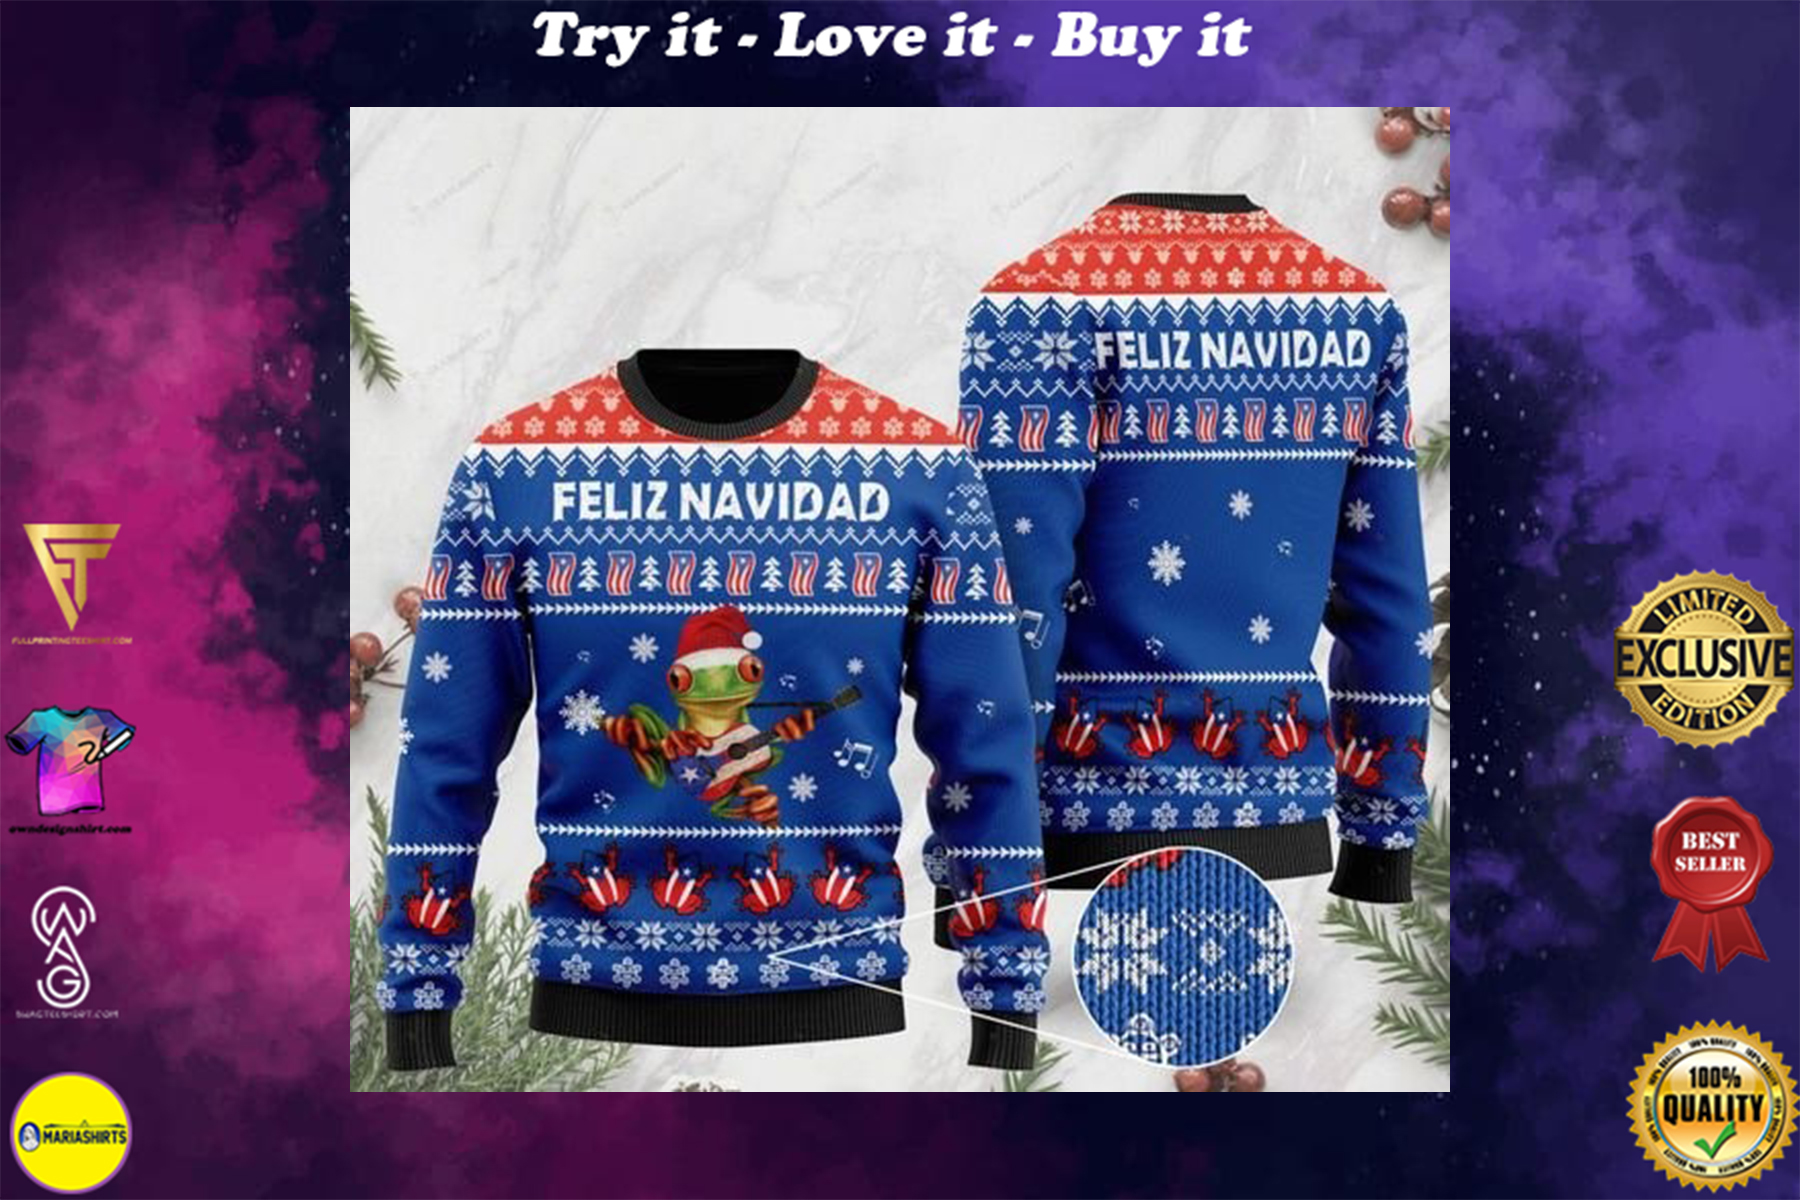 [highest selling] merry christmas puerto rico feliz navidad ugly sweater - maria